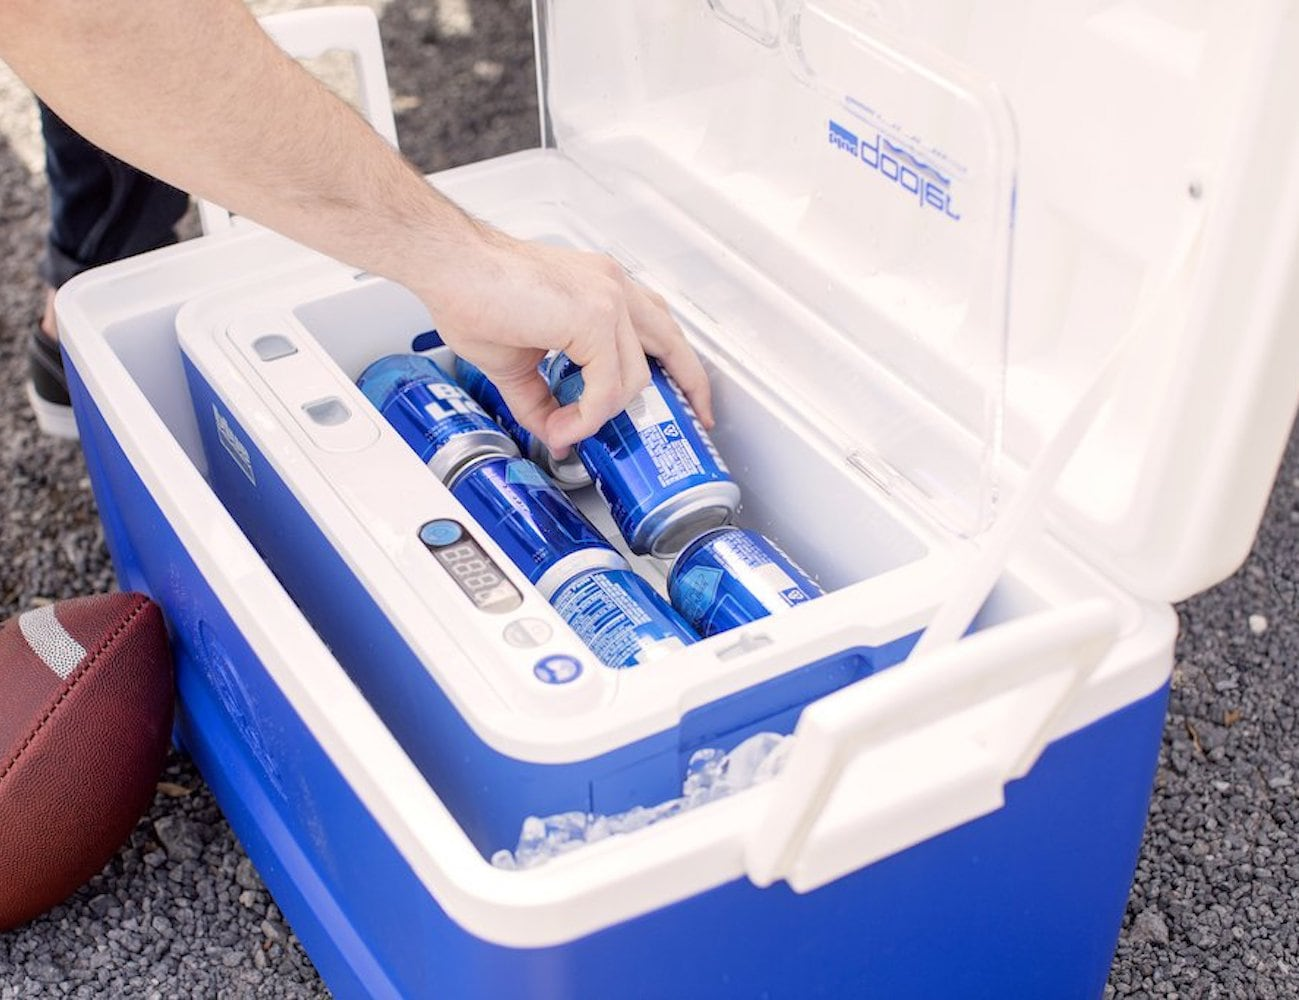 Blue Quench QOOLER Drink-Chilling Device instantly chills your drinks